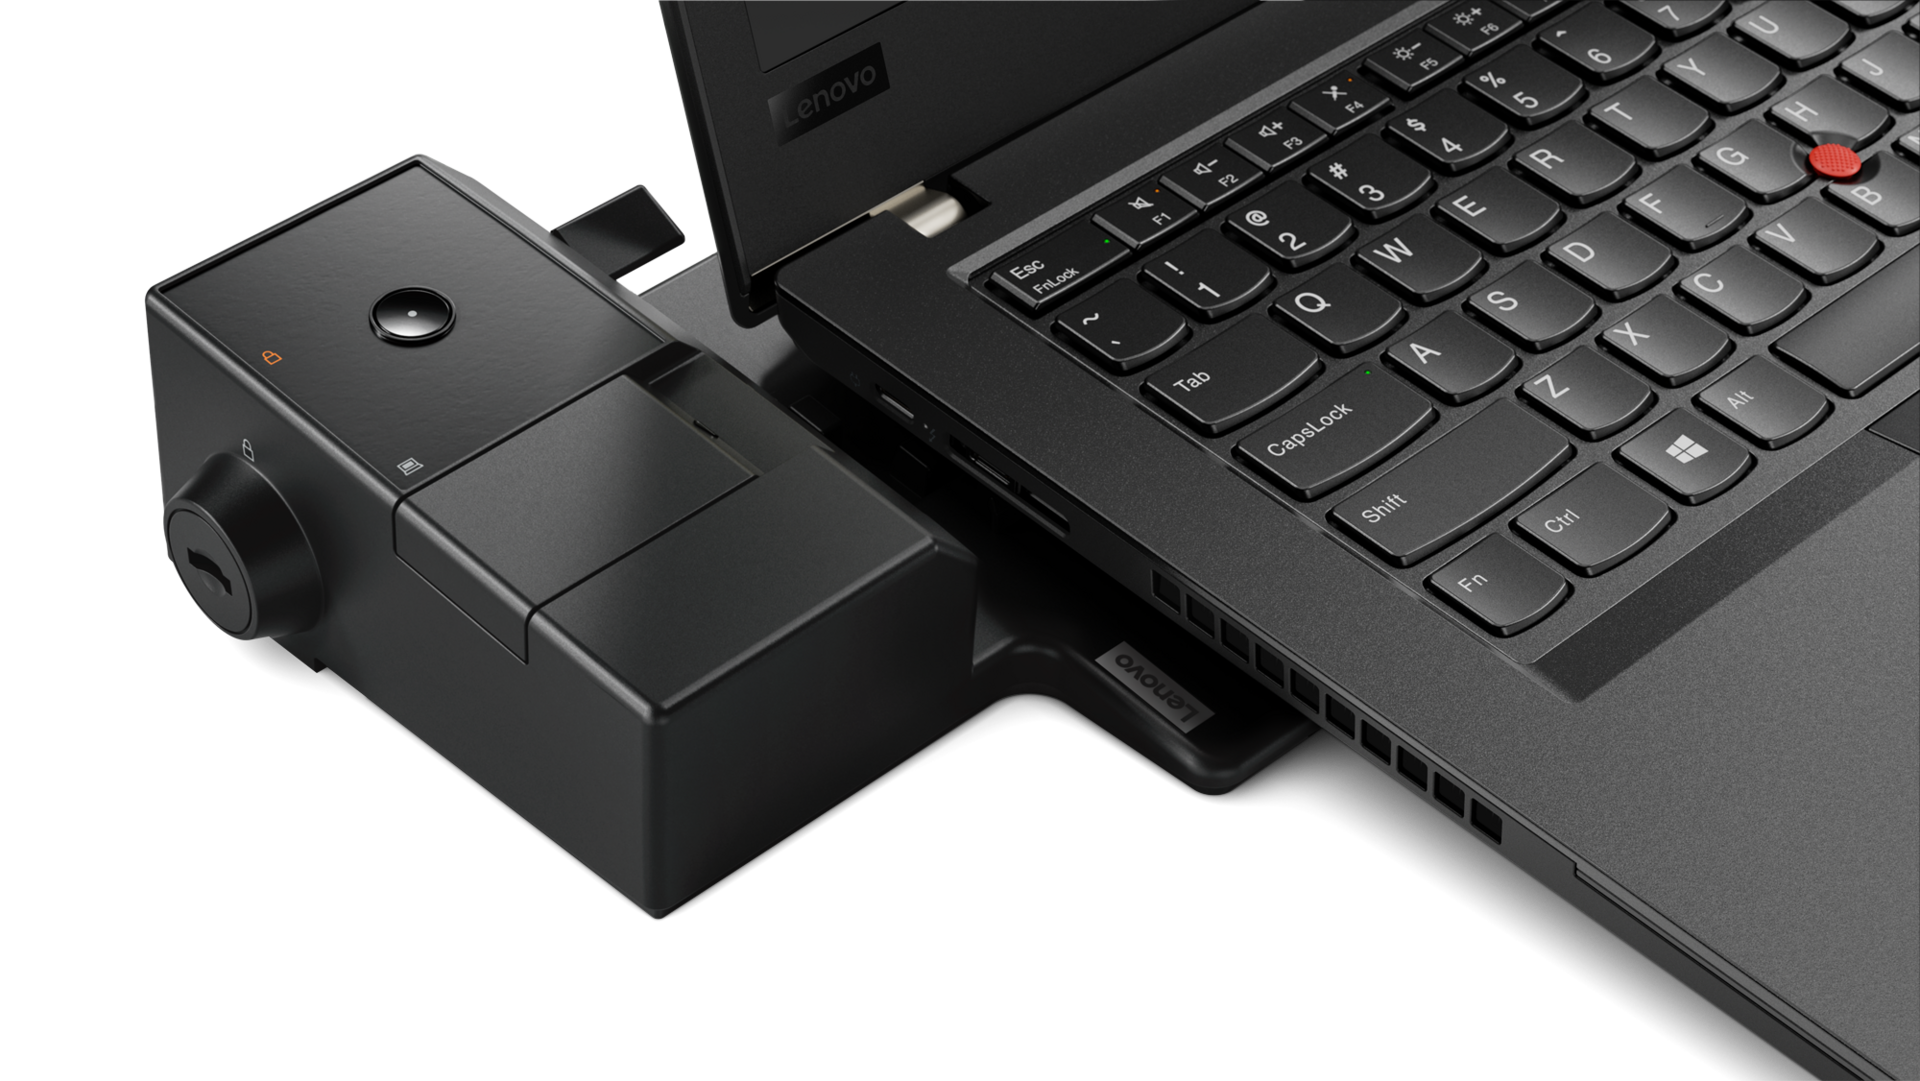 ThinkPad Ultra dock: New docking-stations for the ThinkPad T480